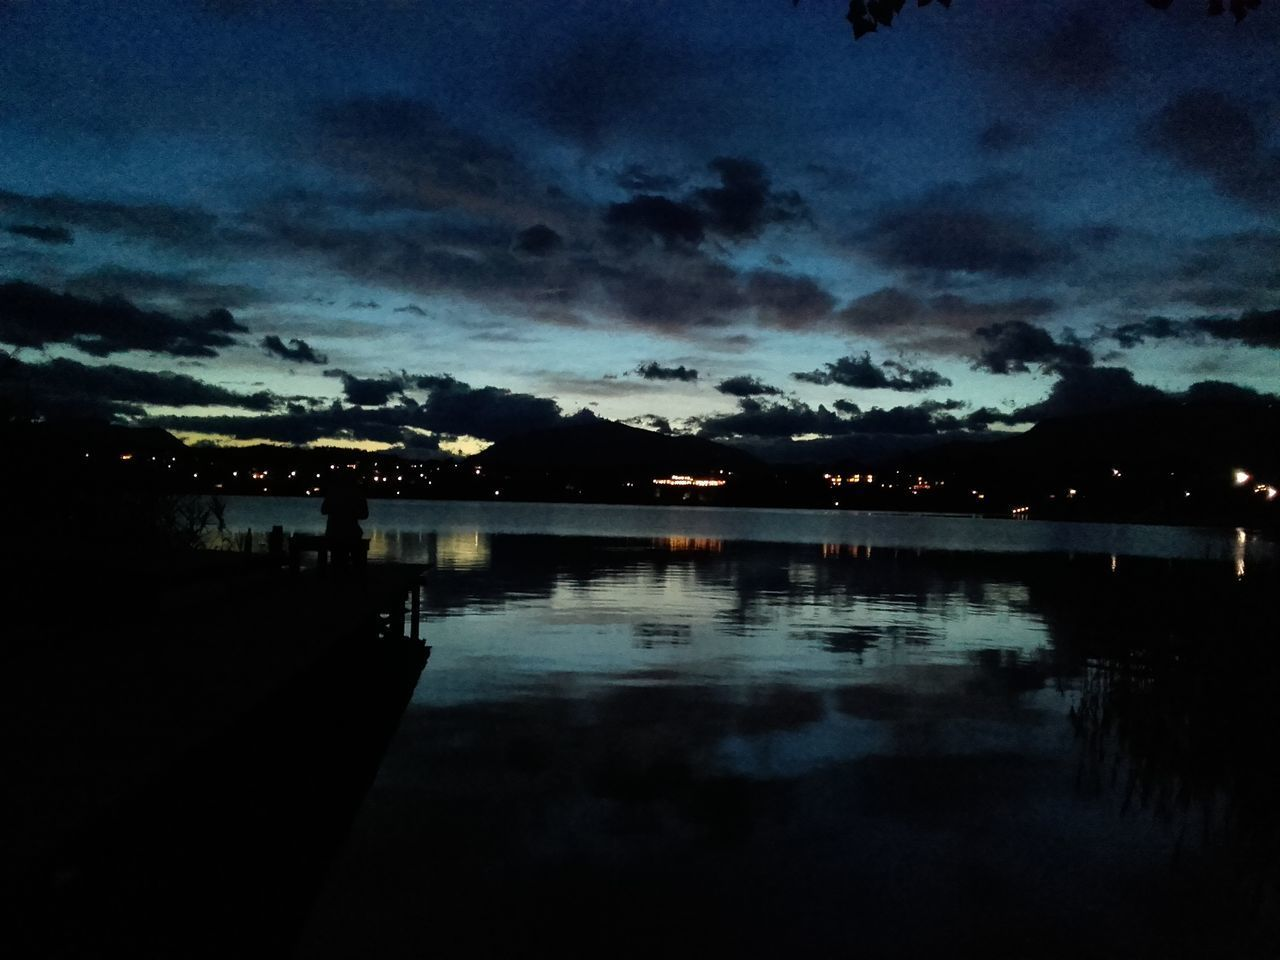 Architecture Beauty In Nature Carinthia Carinthian Lakes Cloud - Sky FaakAmSee Faakersee Illuminated Lake Nature Night No People Outdoors Reflection Scenics Silhouette Sky Sunset Tranquil Scene Tranquility Villach Water